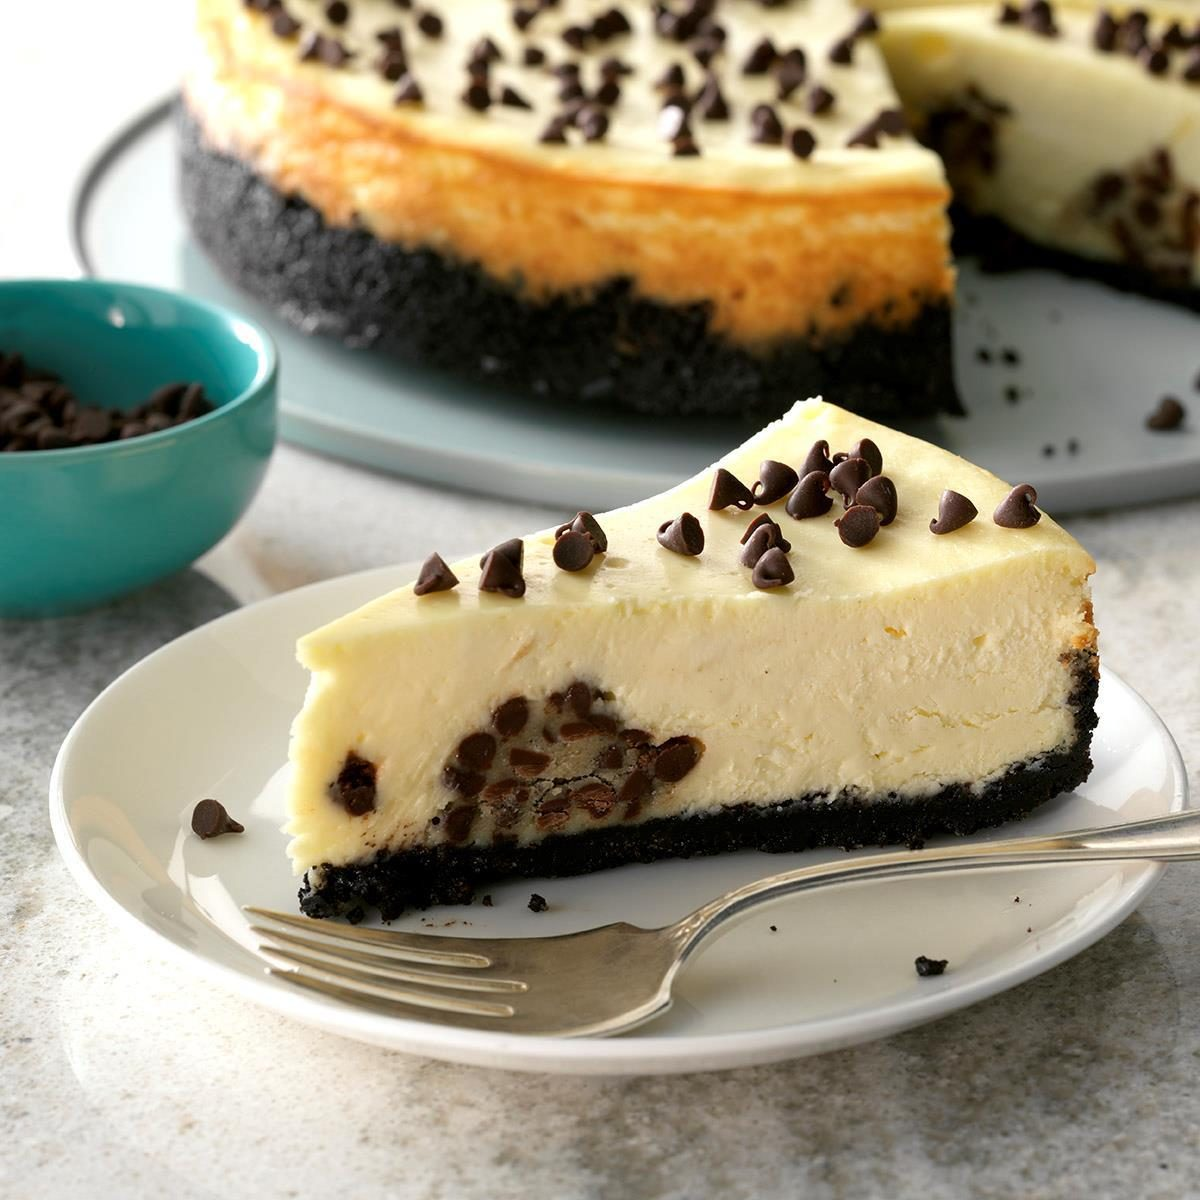 Inspired by: Cheesecake Factory Chocolate Chip Cookie Dough Cheesecake